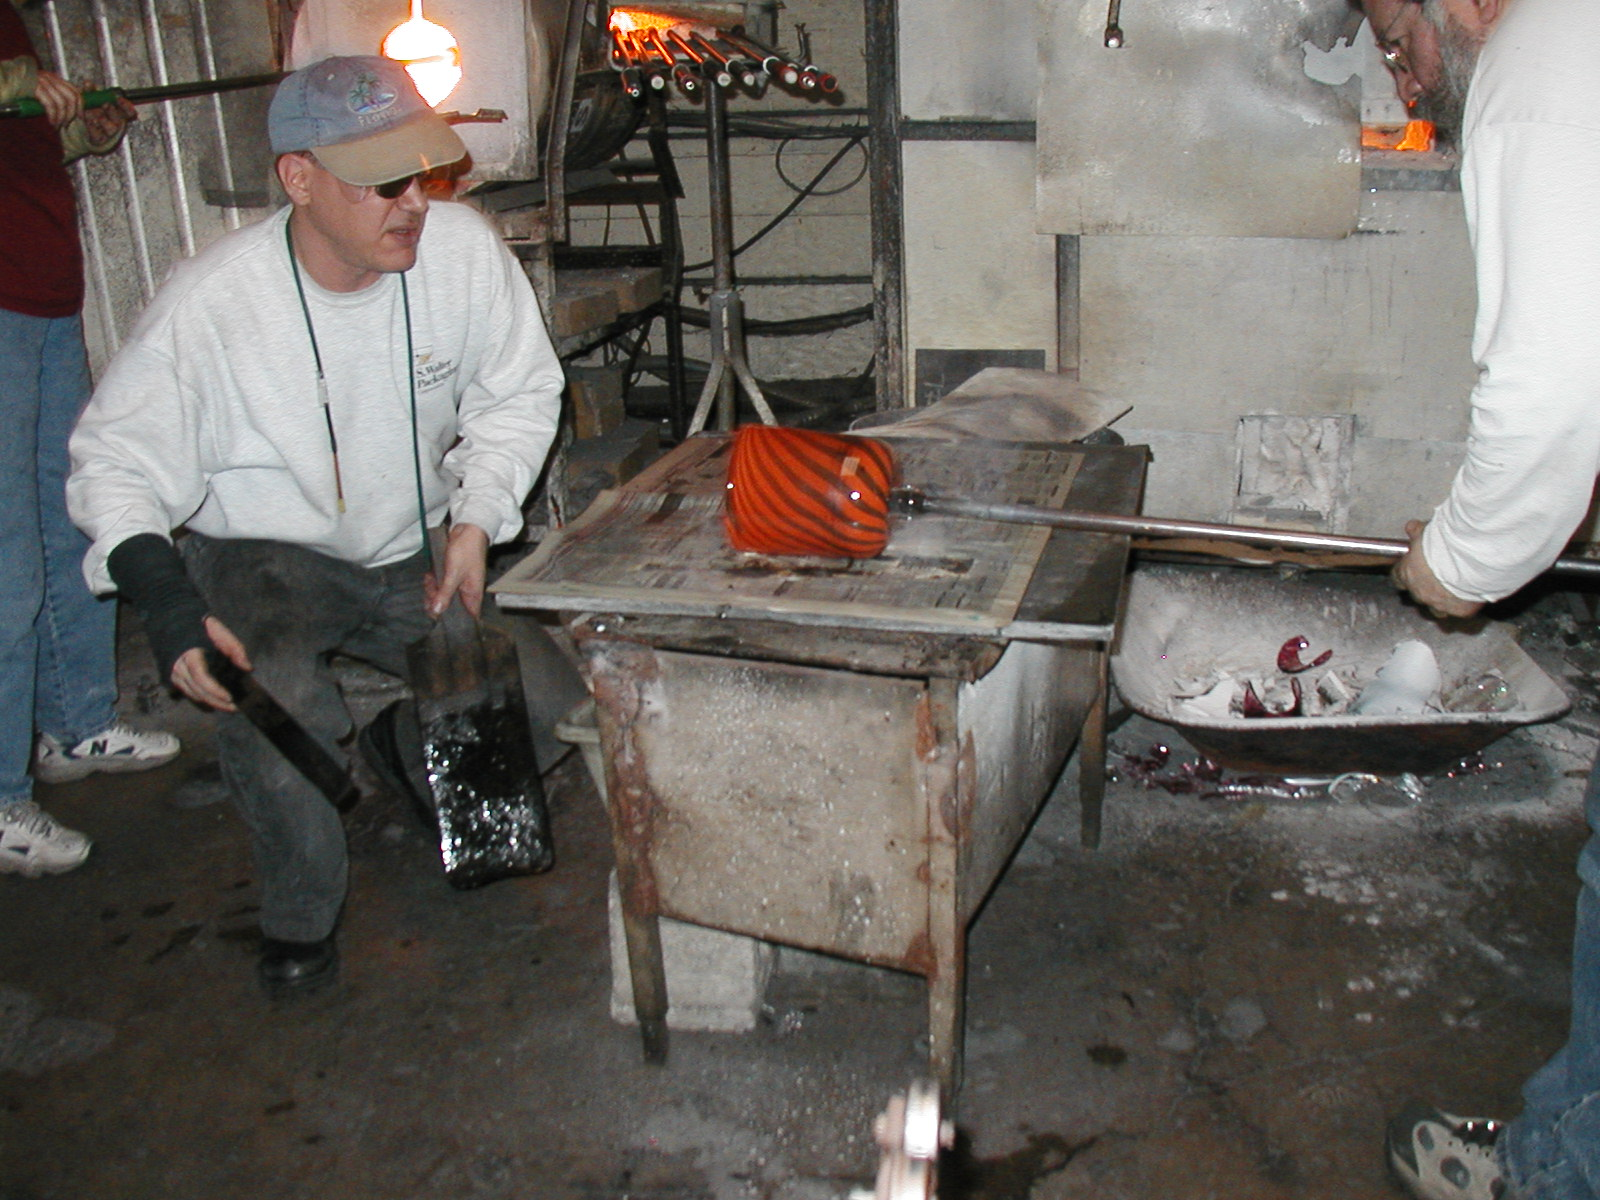 Glassblower.Info - Joel Bless Glasslight Glassblowing class January 18 2004 #116